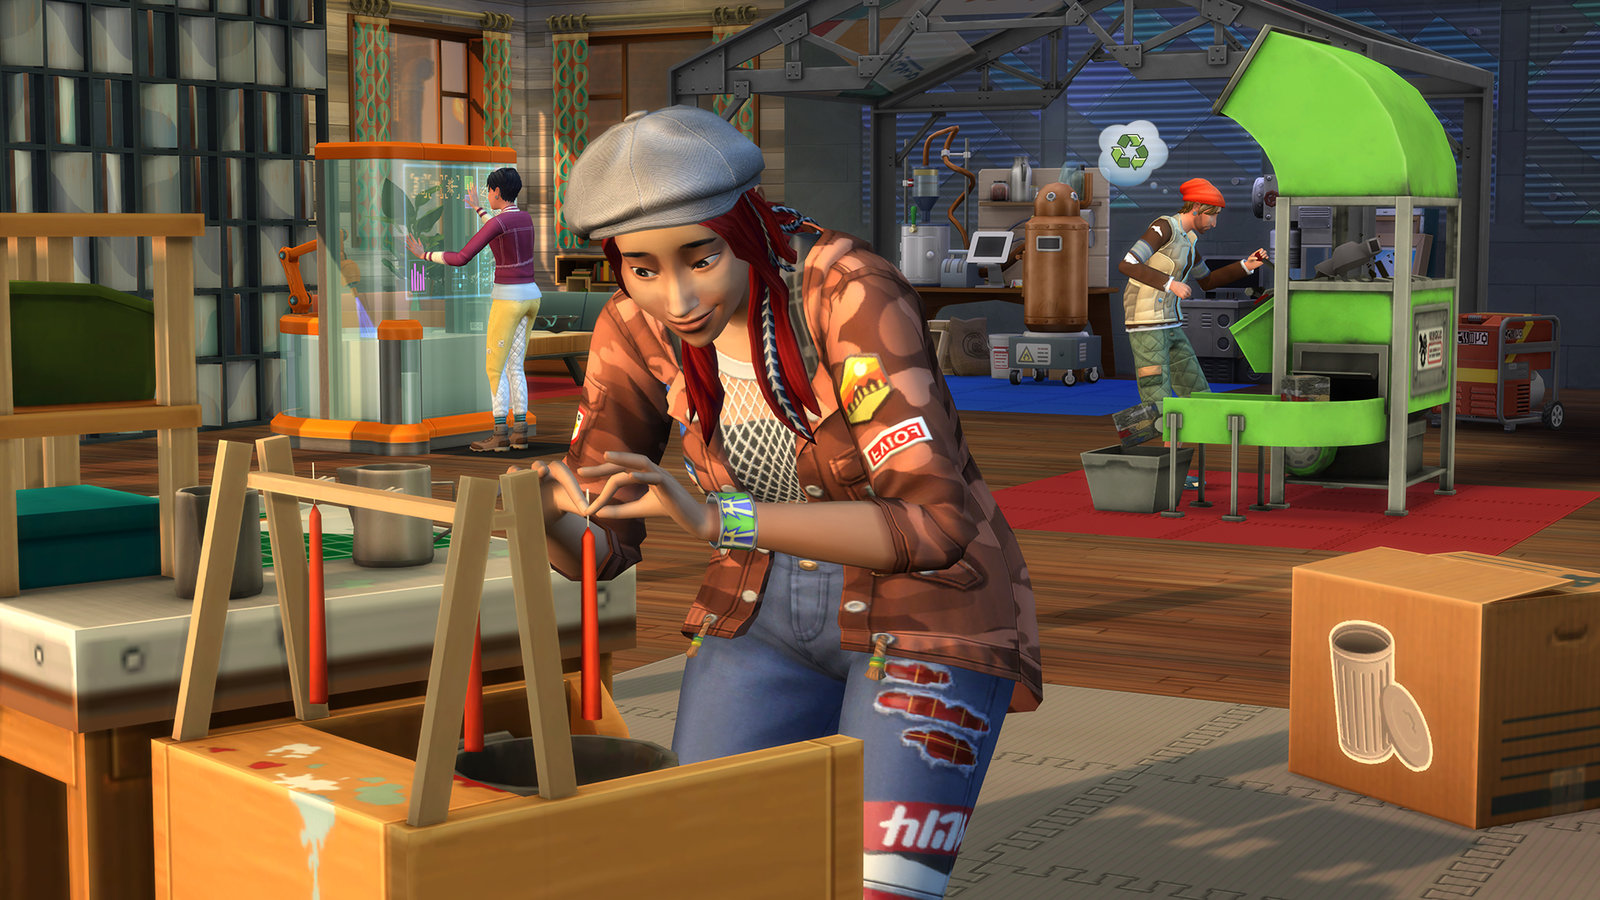 The Sims 4: Eco Lifestyle image 1